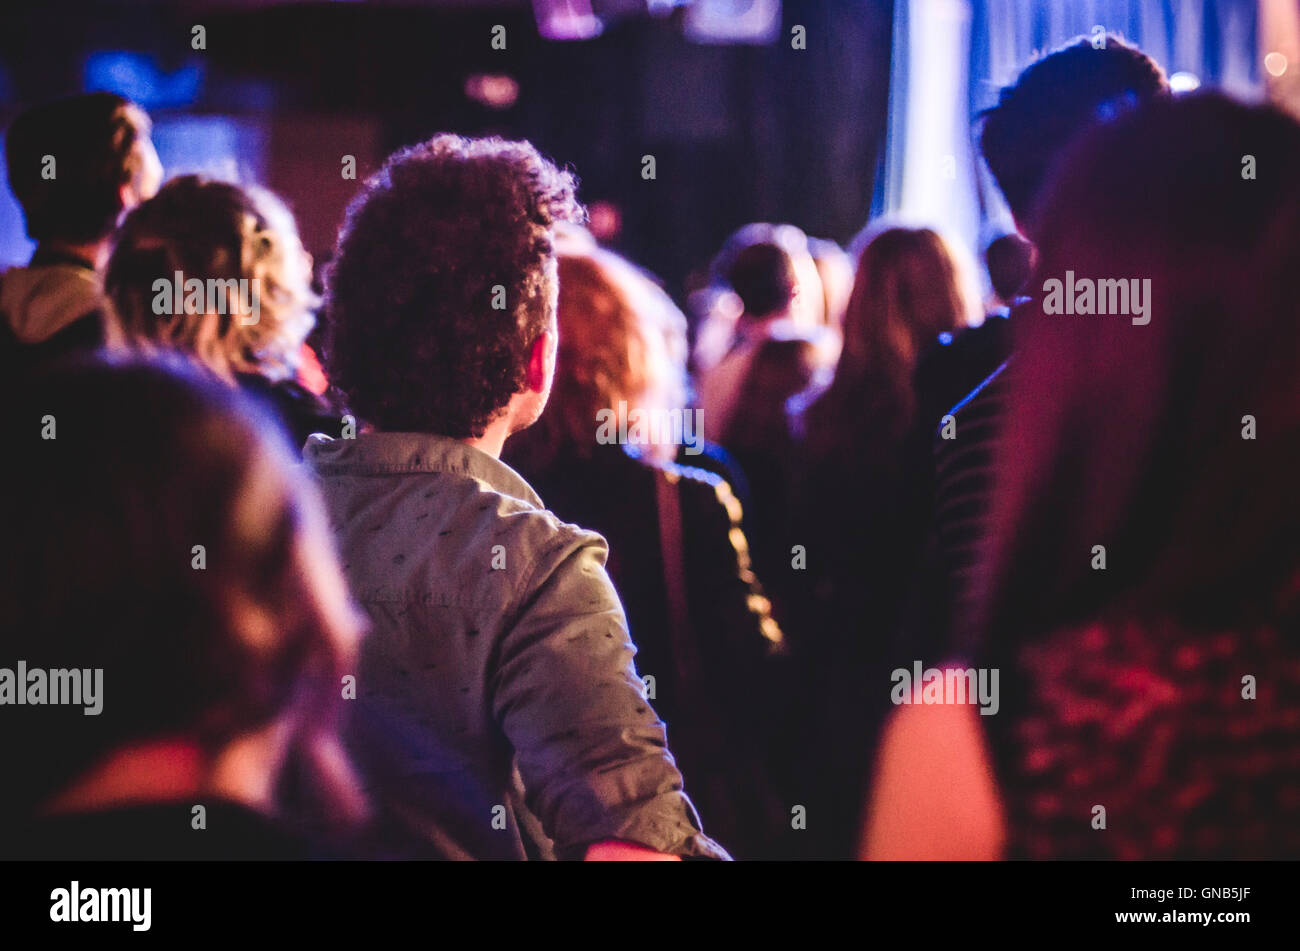 Crowd of People Watching Concert in Small Club Venue - Stock Image